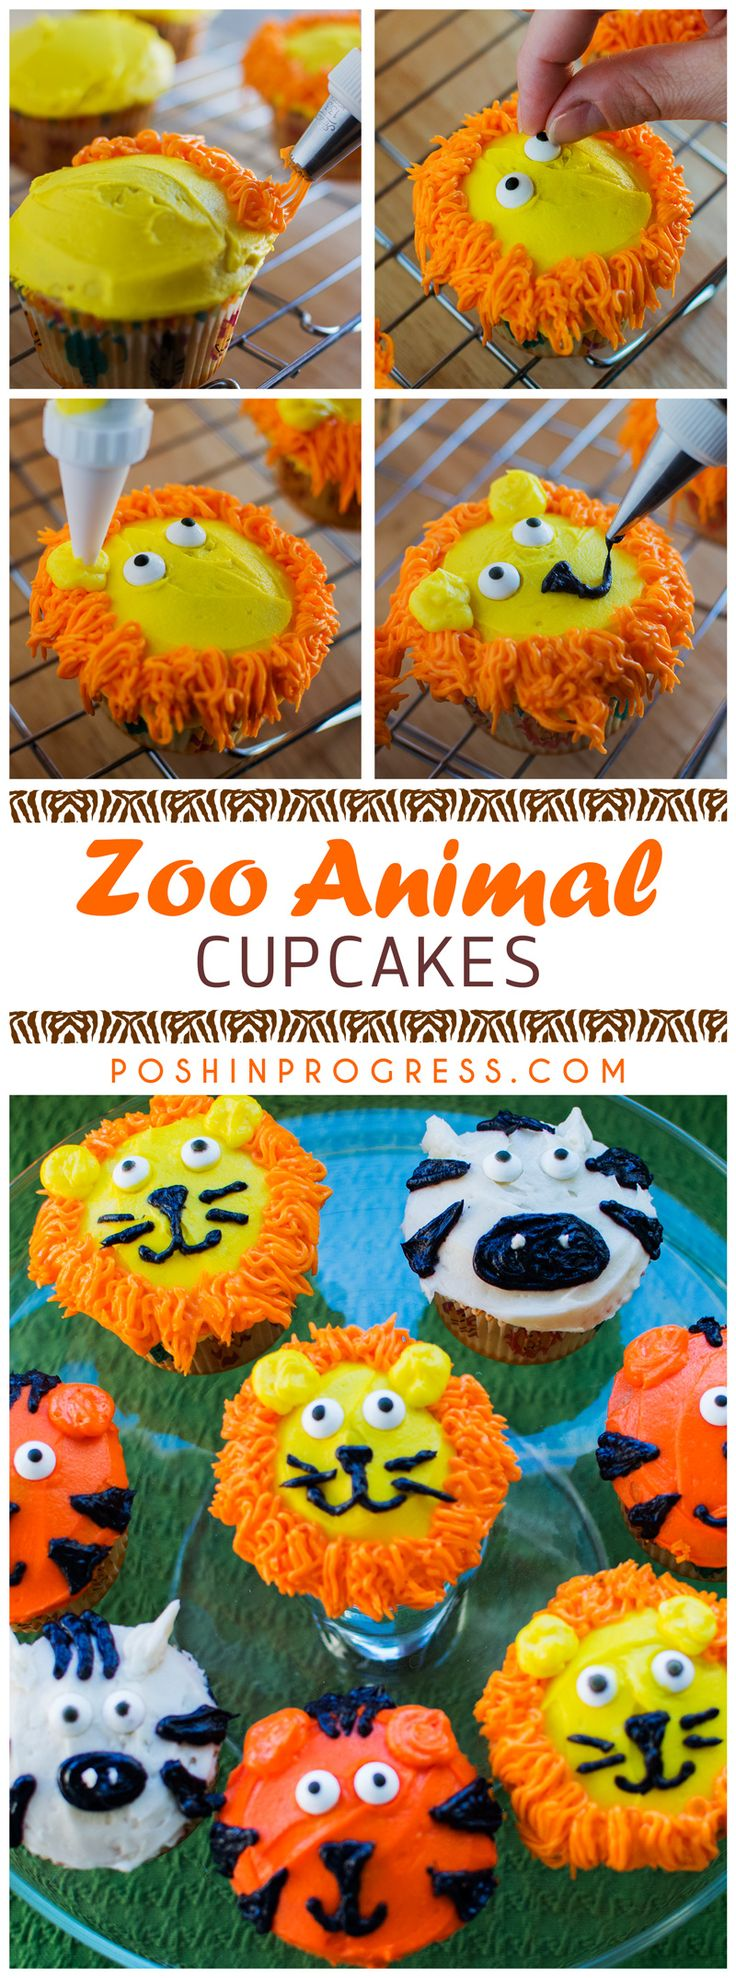 Lions and tigers and...zebras? I decided to try my hand at cake decorating. So with a little YouTube help and Pinterest inspiration, I created zoo animal cupcakes for my Giada's 2nd birthday. How'd I do?